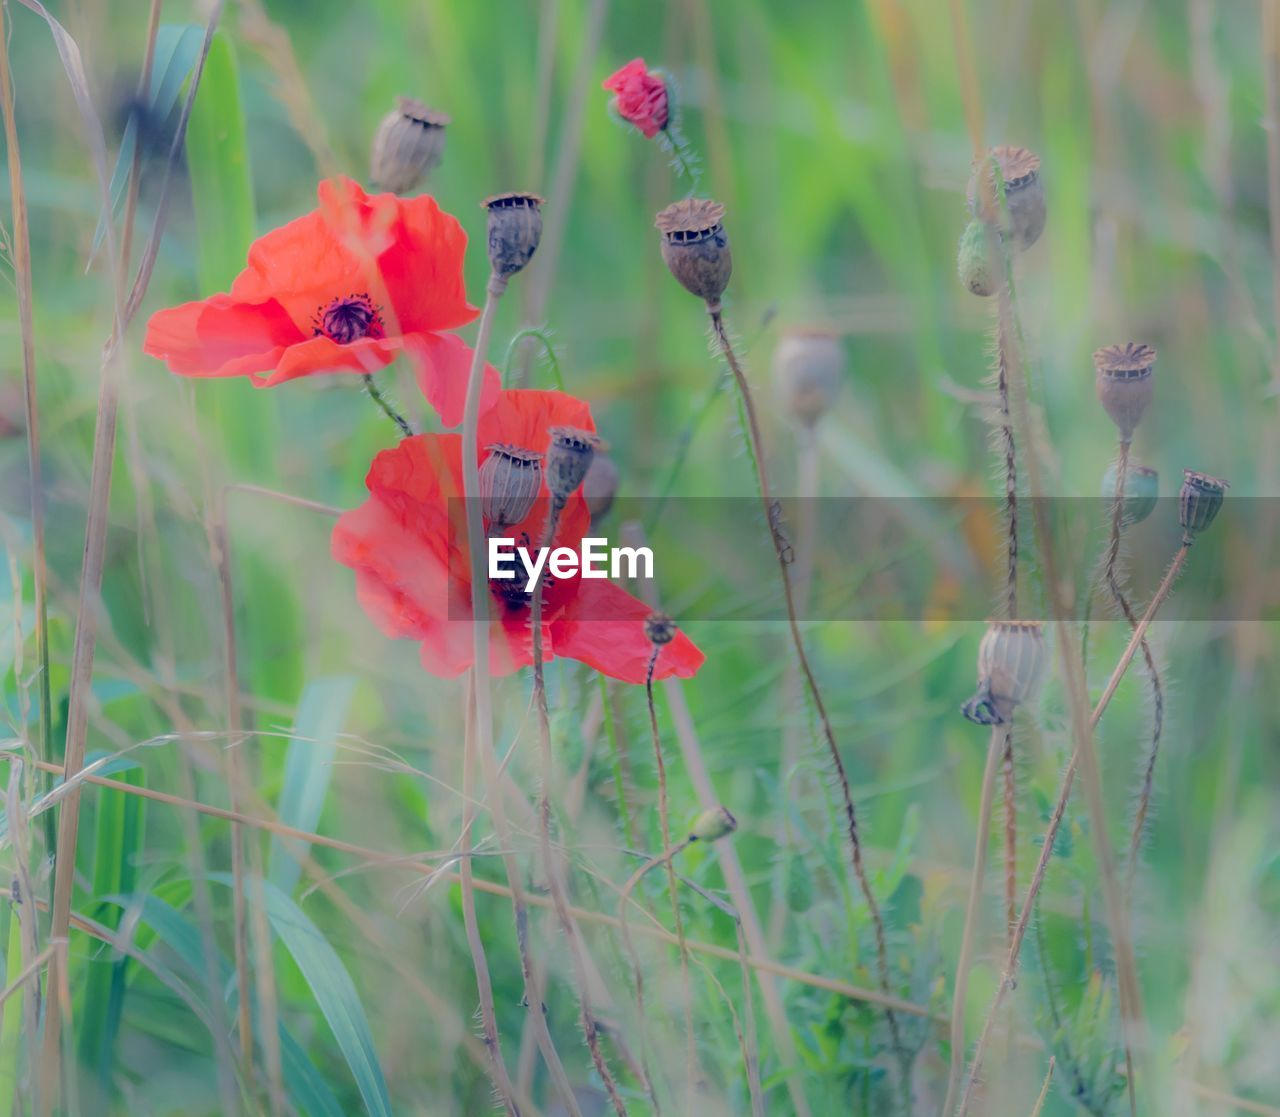 flower, plant, growth, nature, poppy, no people, day, red, field, fragility, outdoors, close-up, beauty in nature, grass, animal themes, animals in the wild, flower head, ladybug, freshness